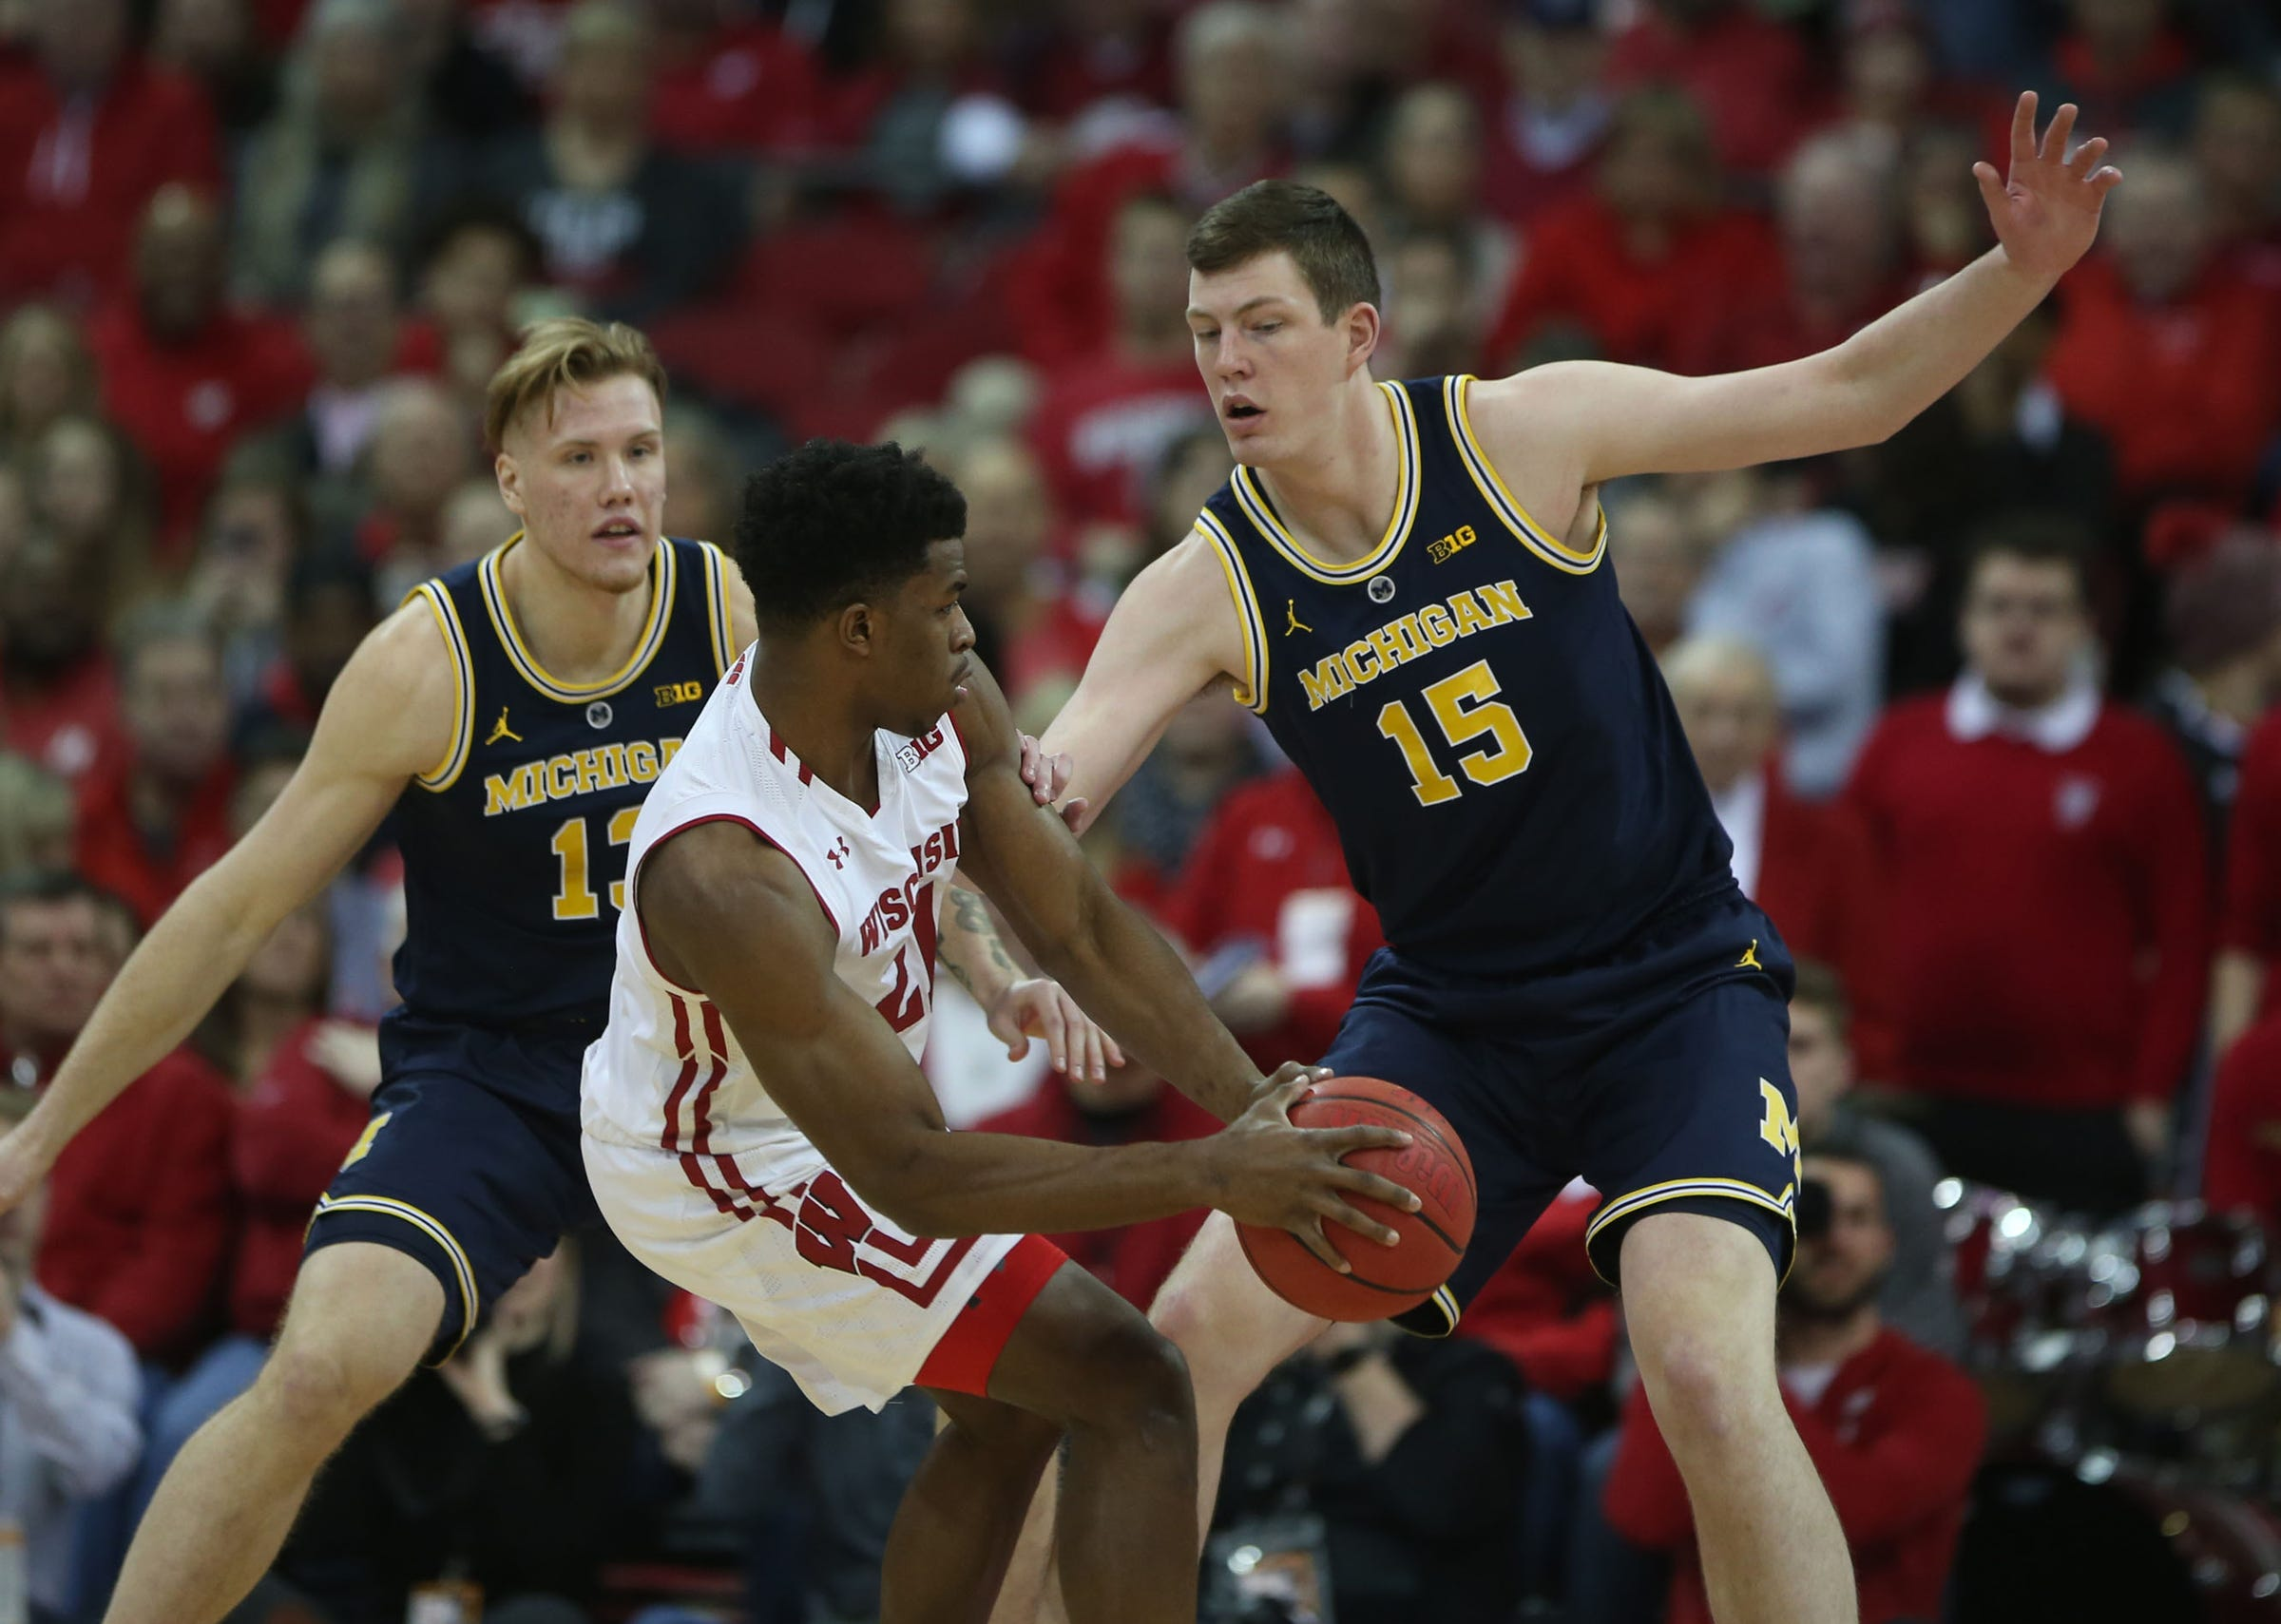 No. 4 Michigan falls to unranked Wisconsin for its first loss of season